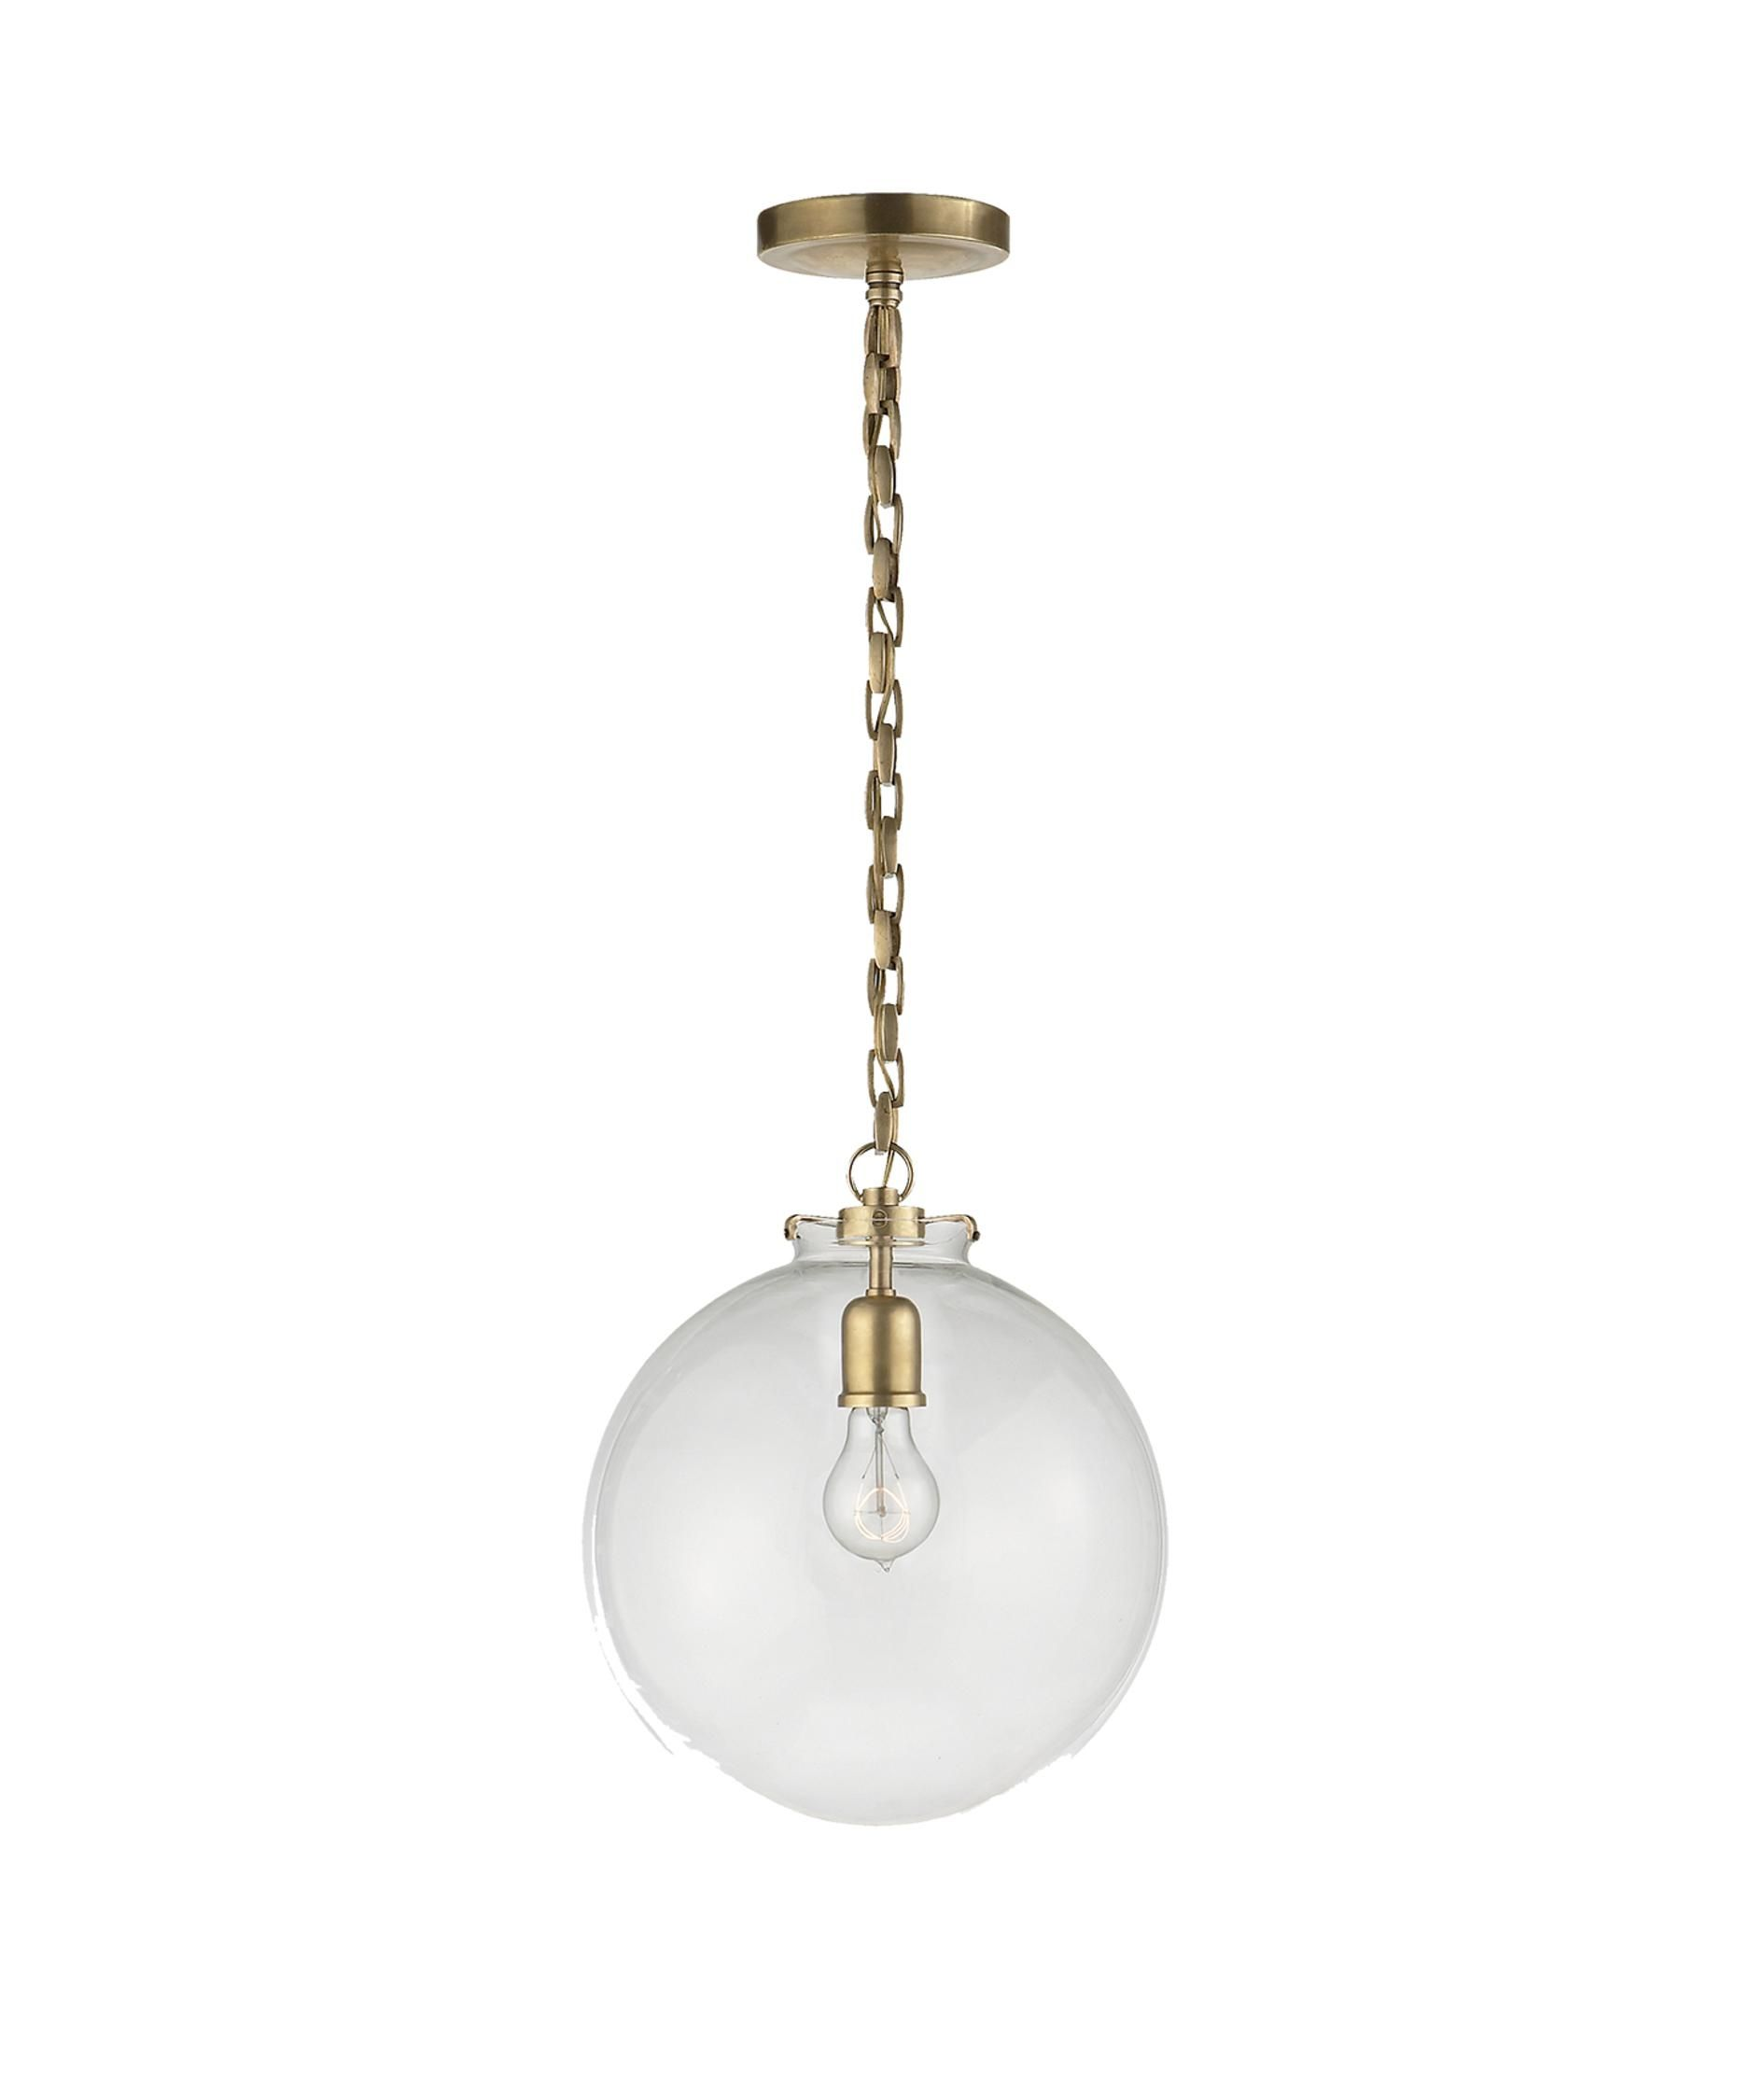 Thomas O Brien Katie 12 Inch Mini Pendant By Visual Comfort And Co Glass Globe Pendant Globe Pendant Acorn Pendant